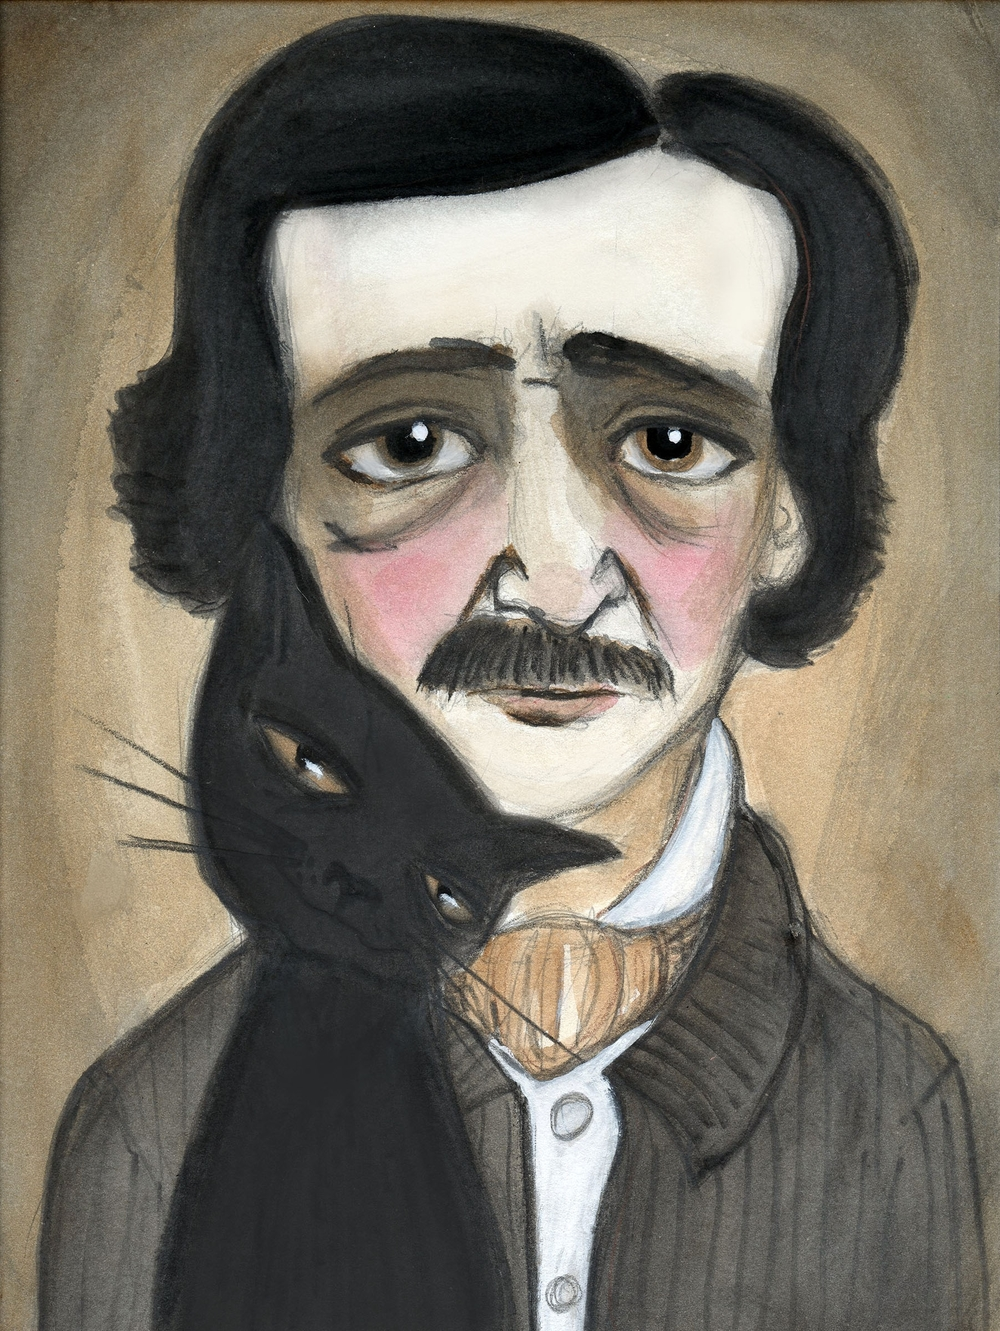 Edgar Allan Poe and the Black Cat